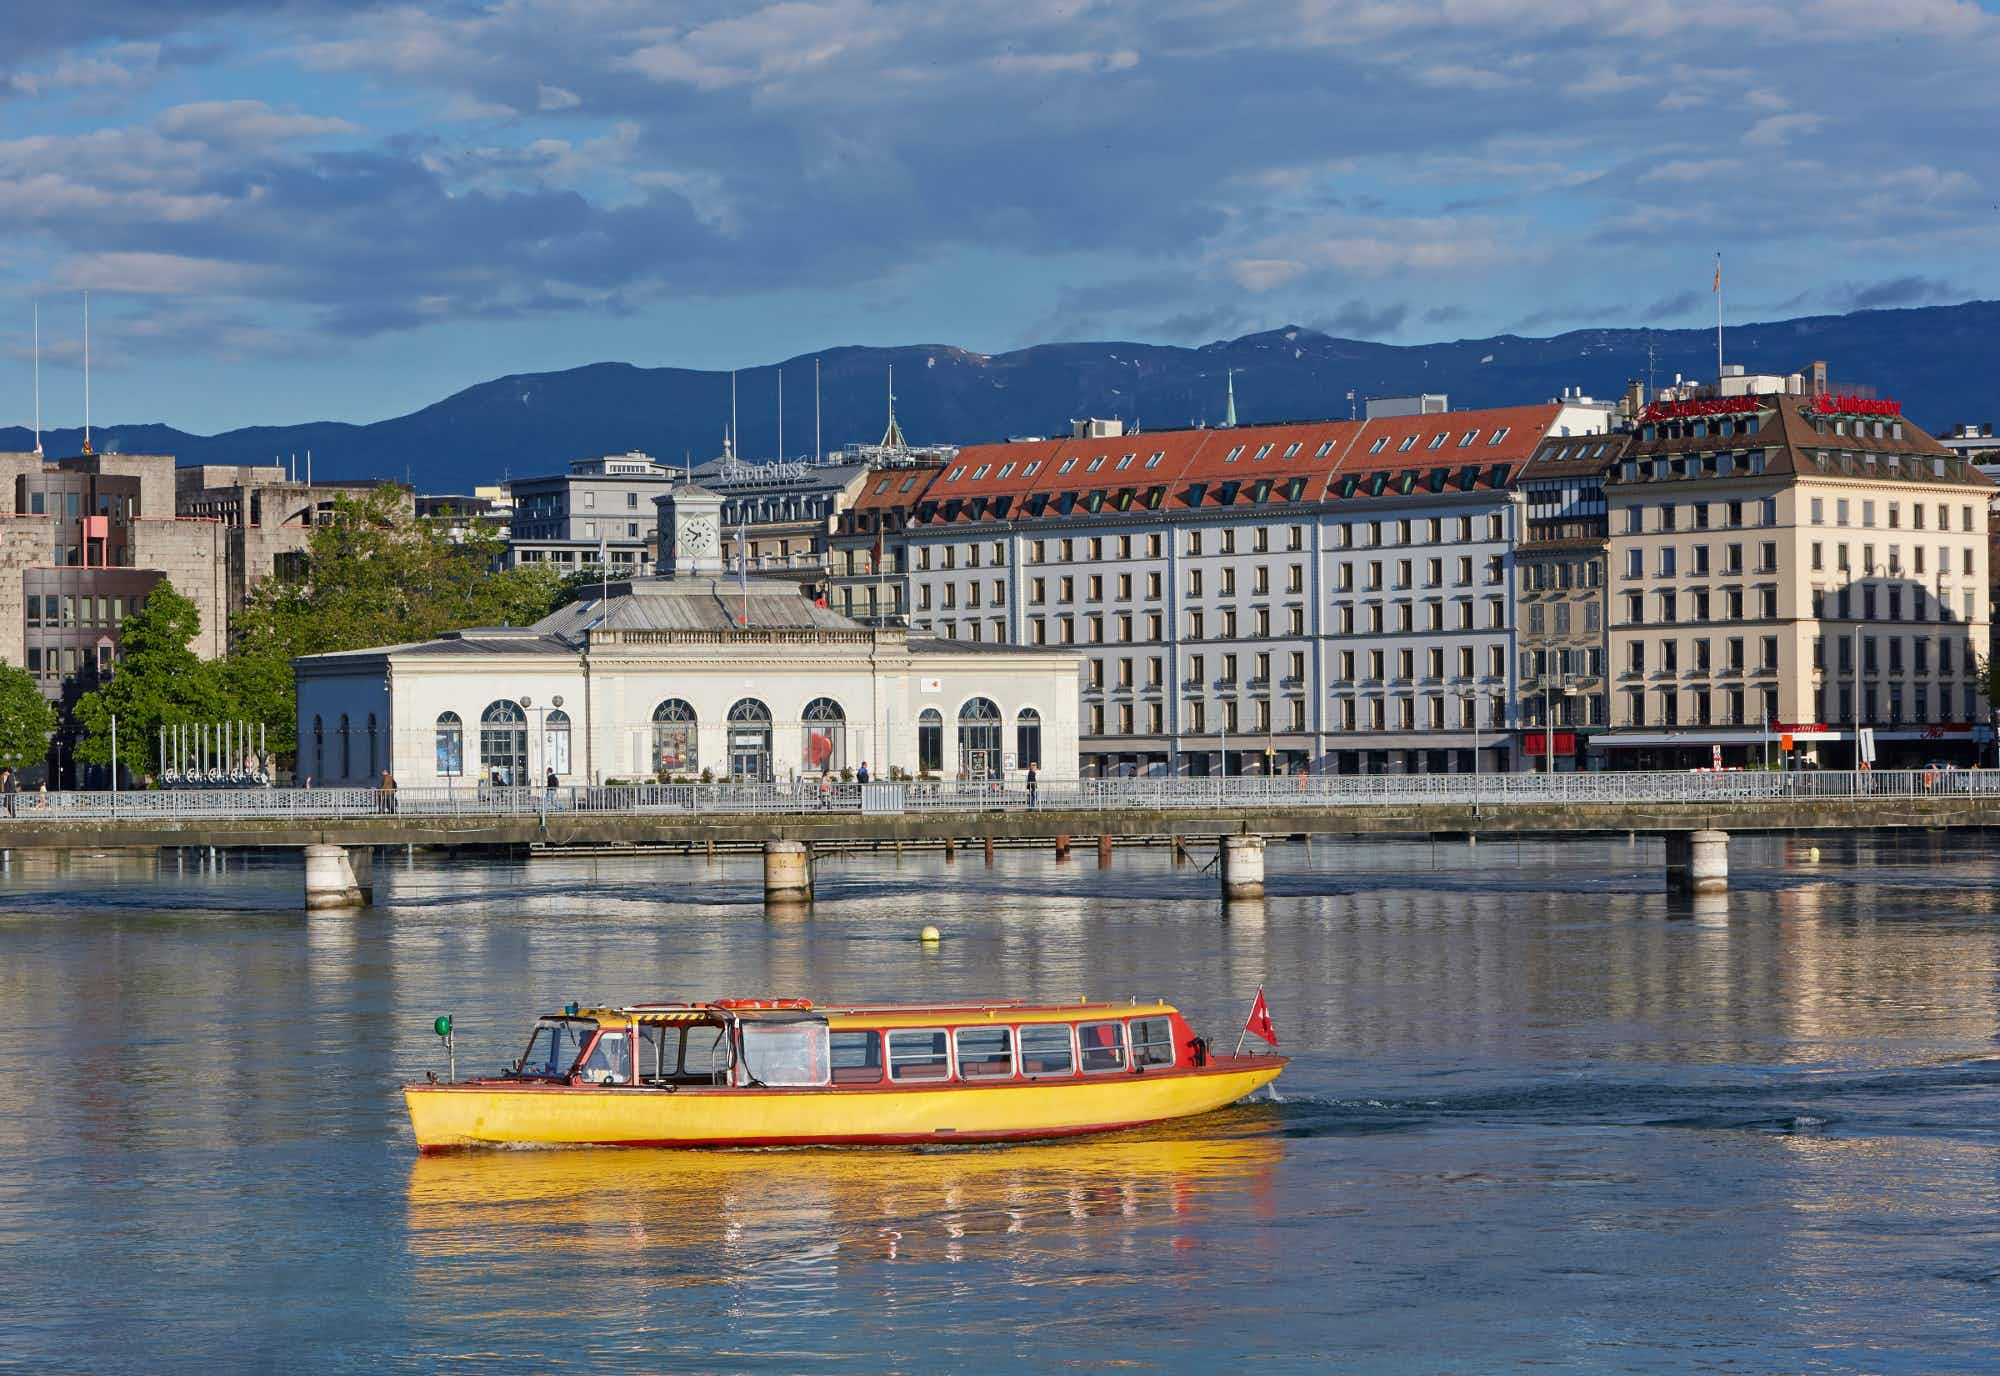 Geneva's Hotels Night offers residents luxury stays at discounted rates